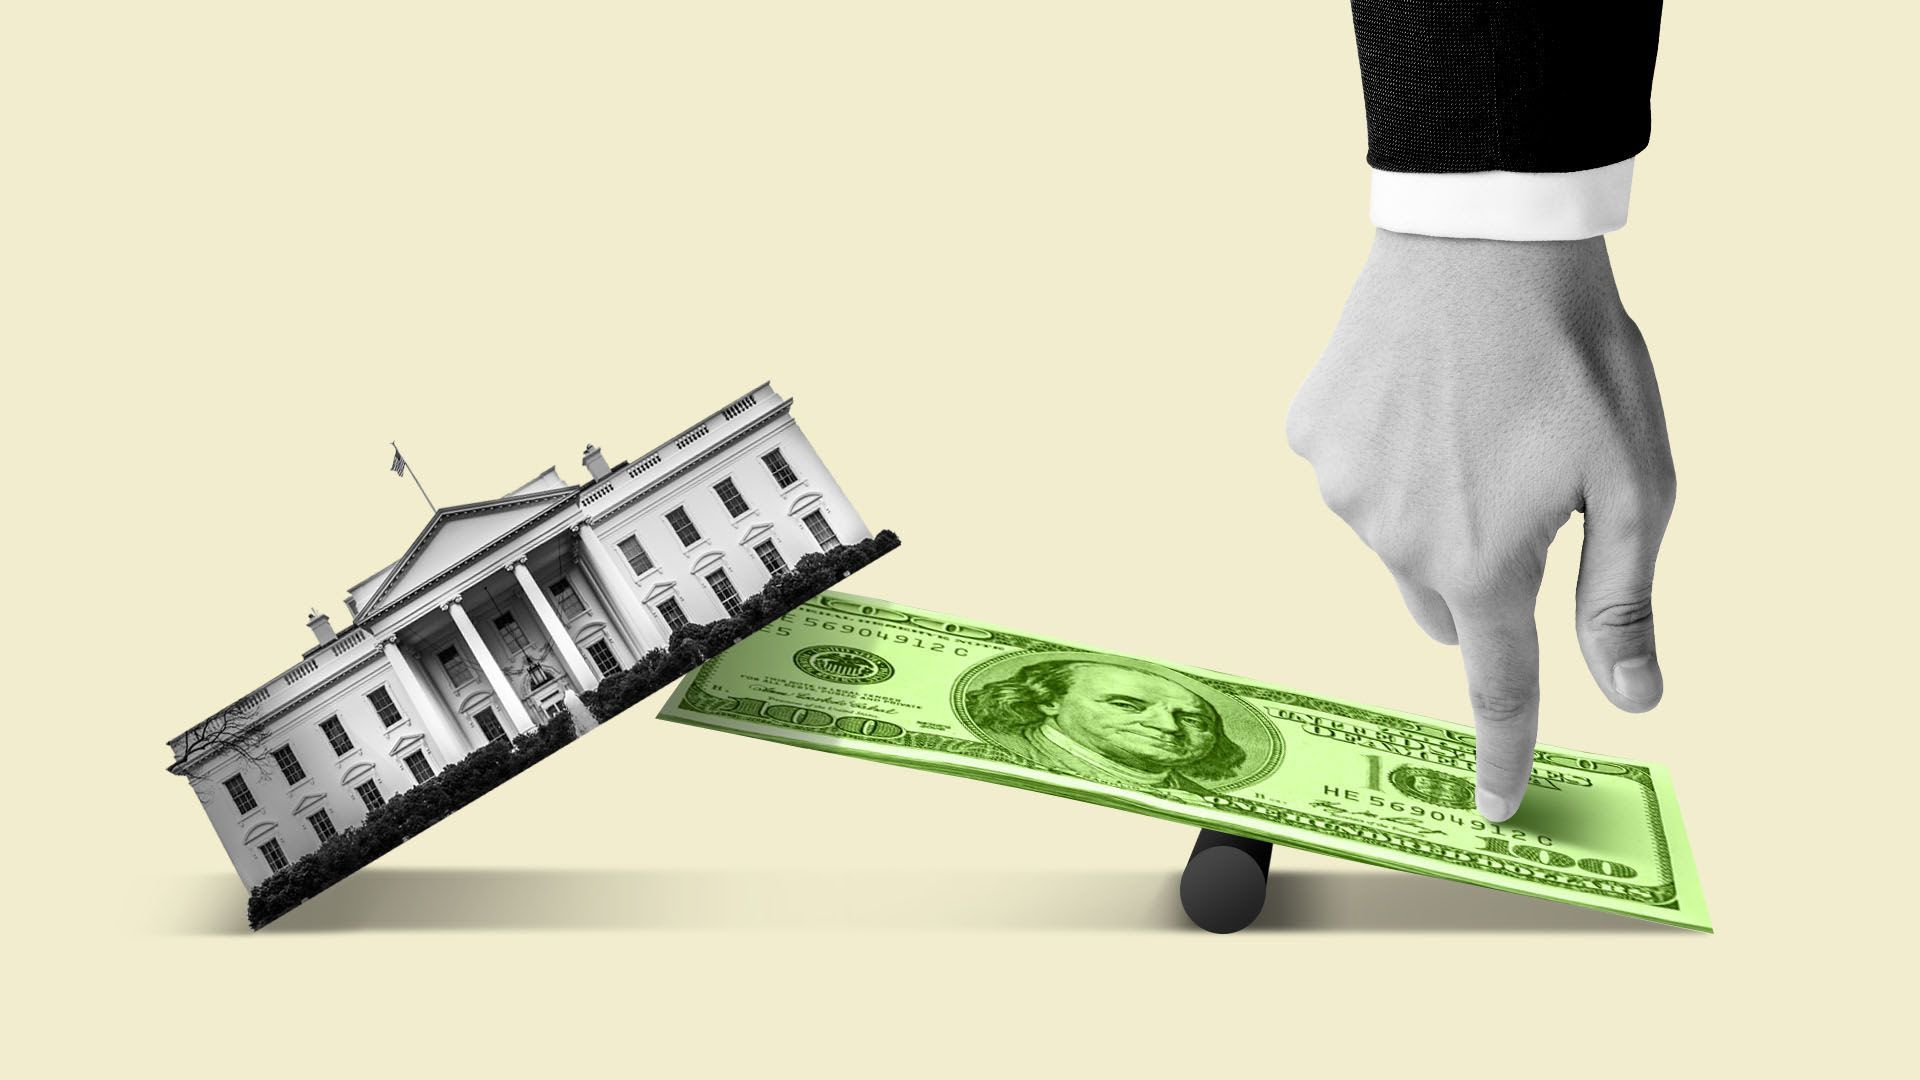 Democrats' next oversight move: The power of the purse